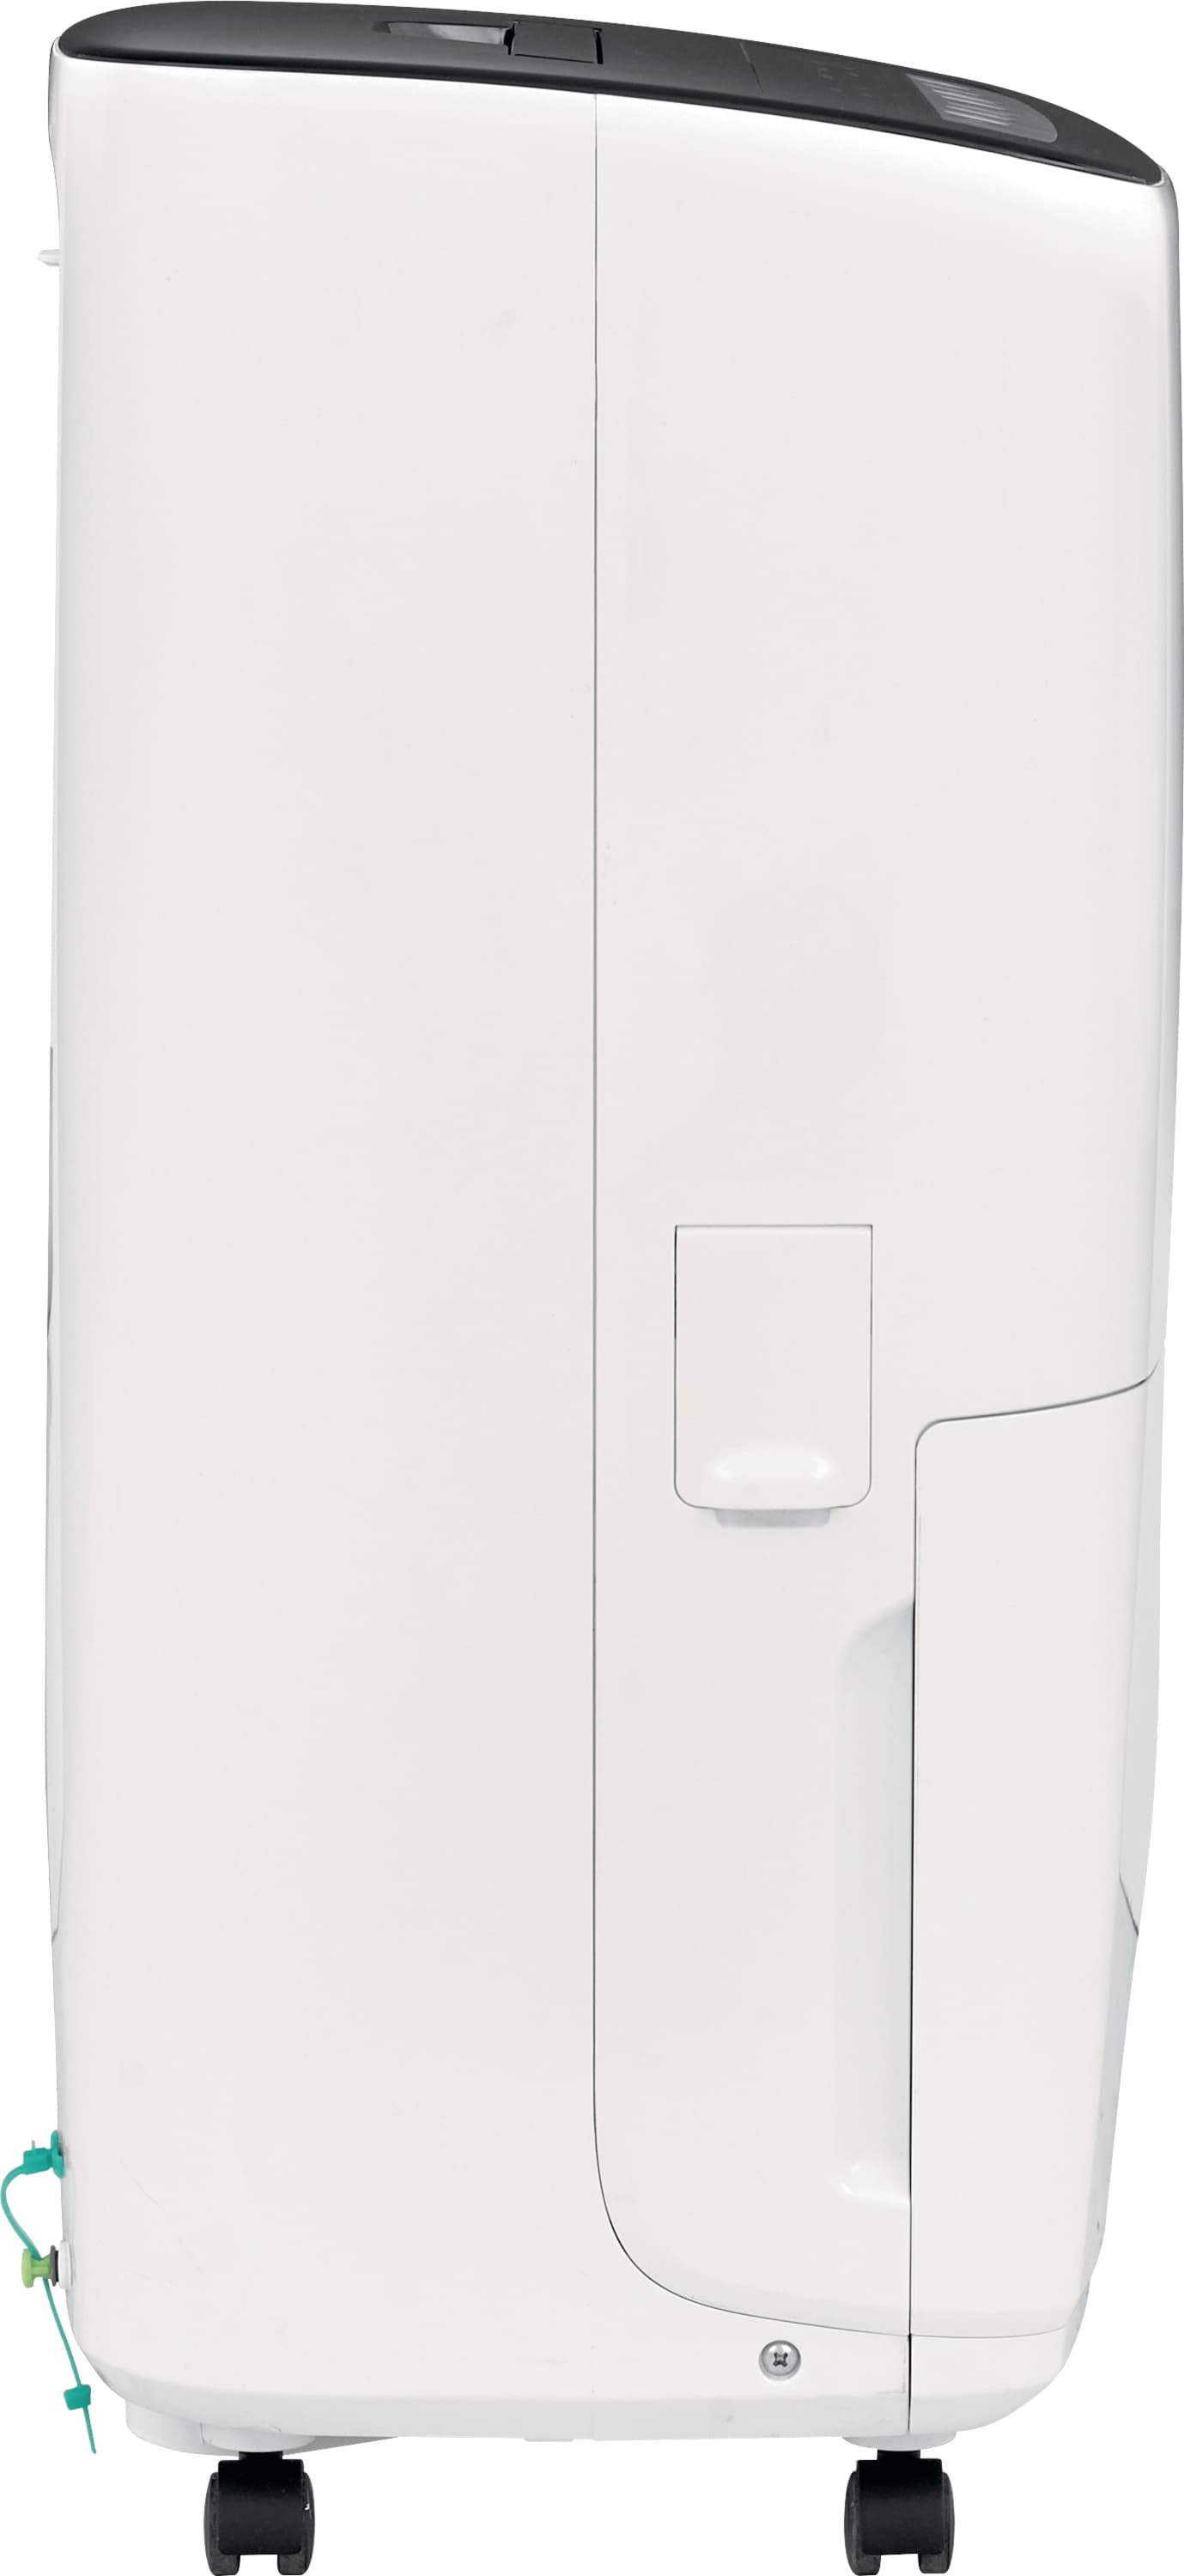 70 Pint Capacity Dehumidifier With Built-In Pump